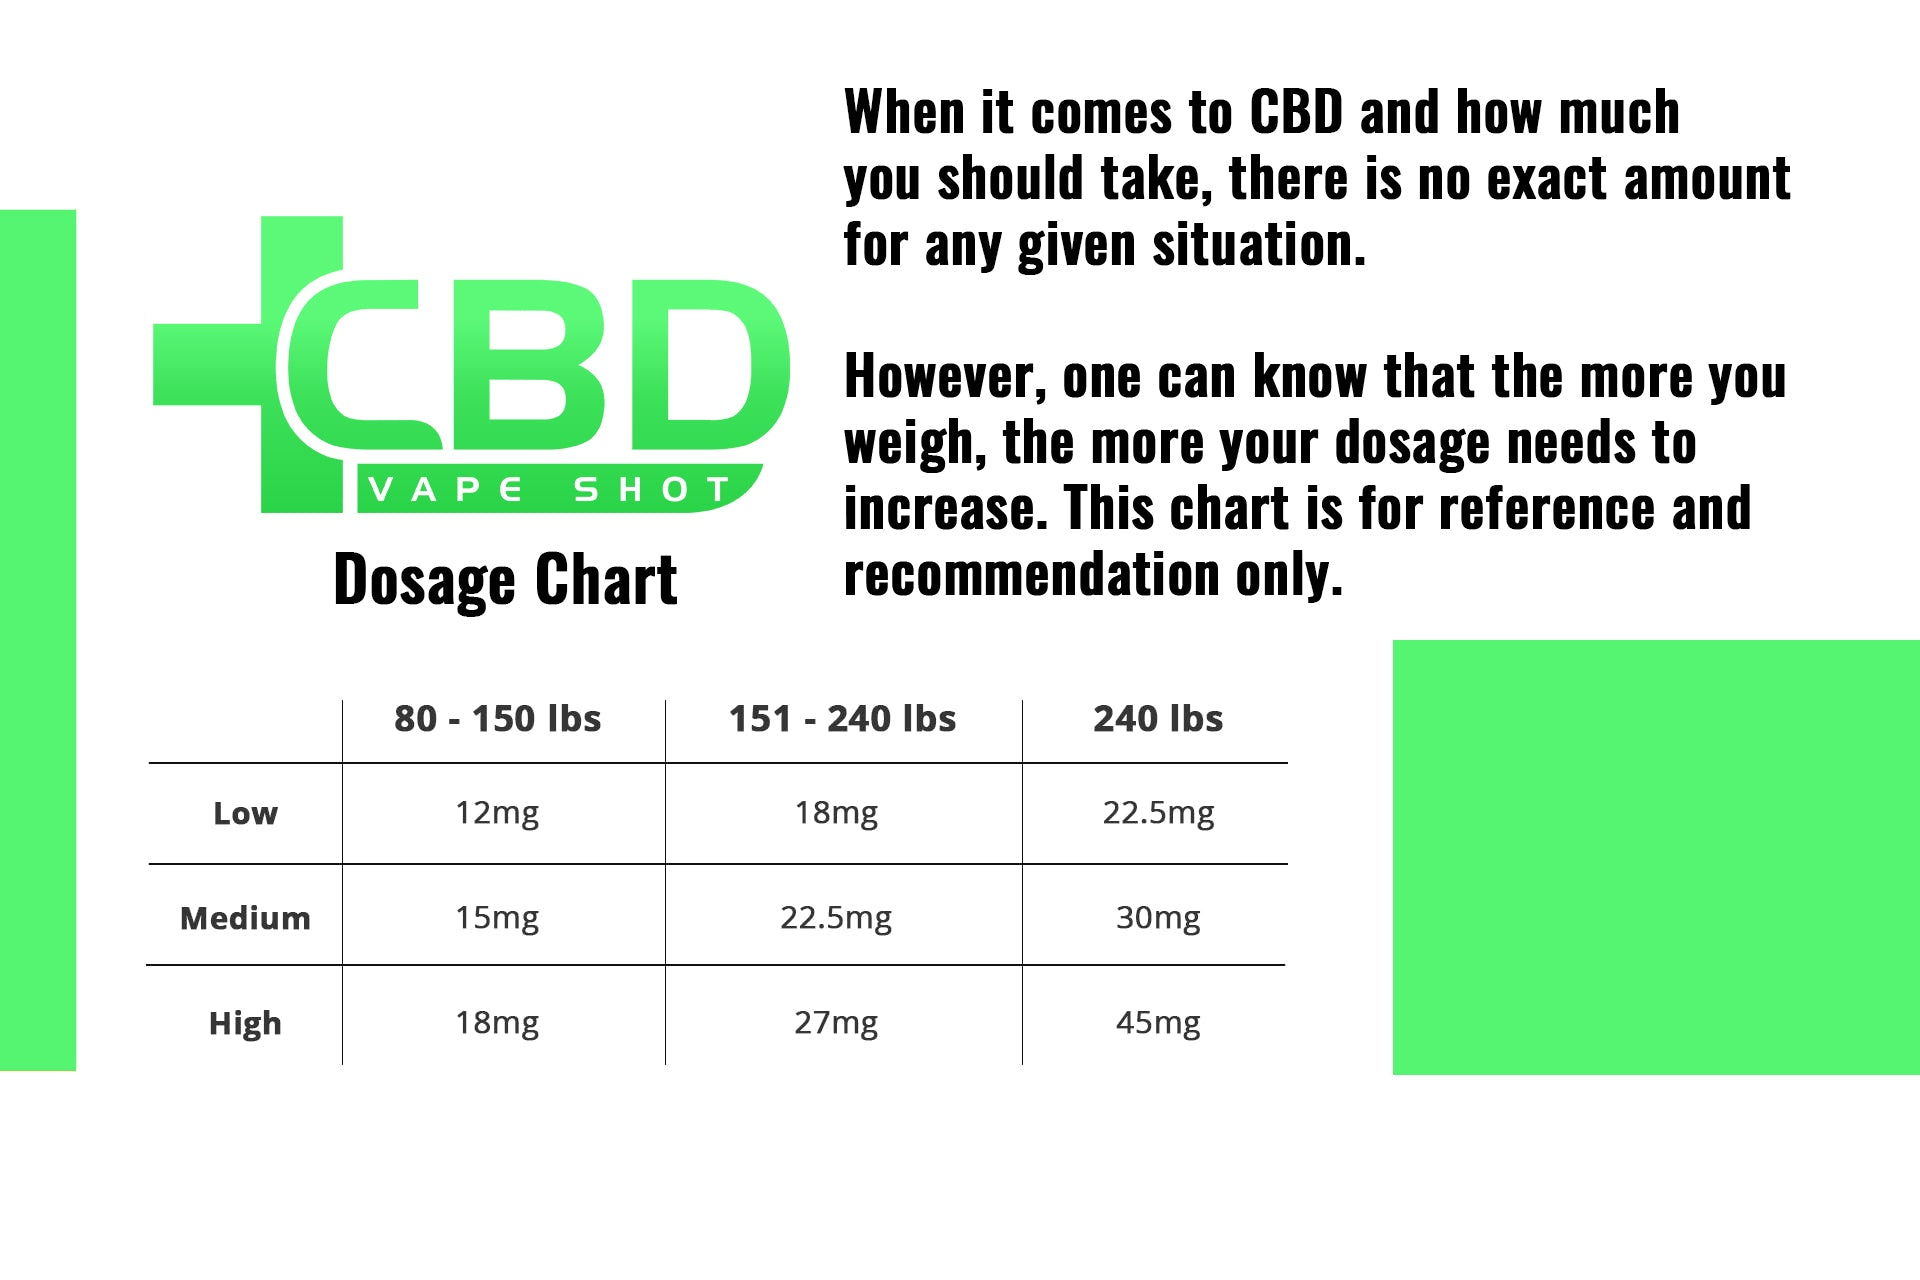 CBD Vape Shot Dosage Chart